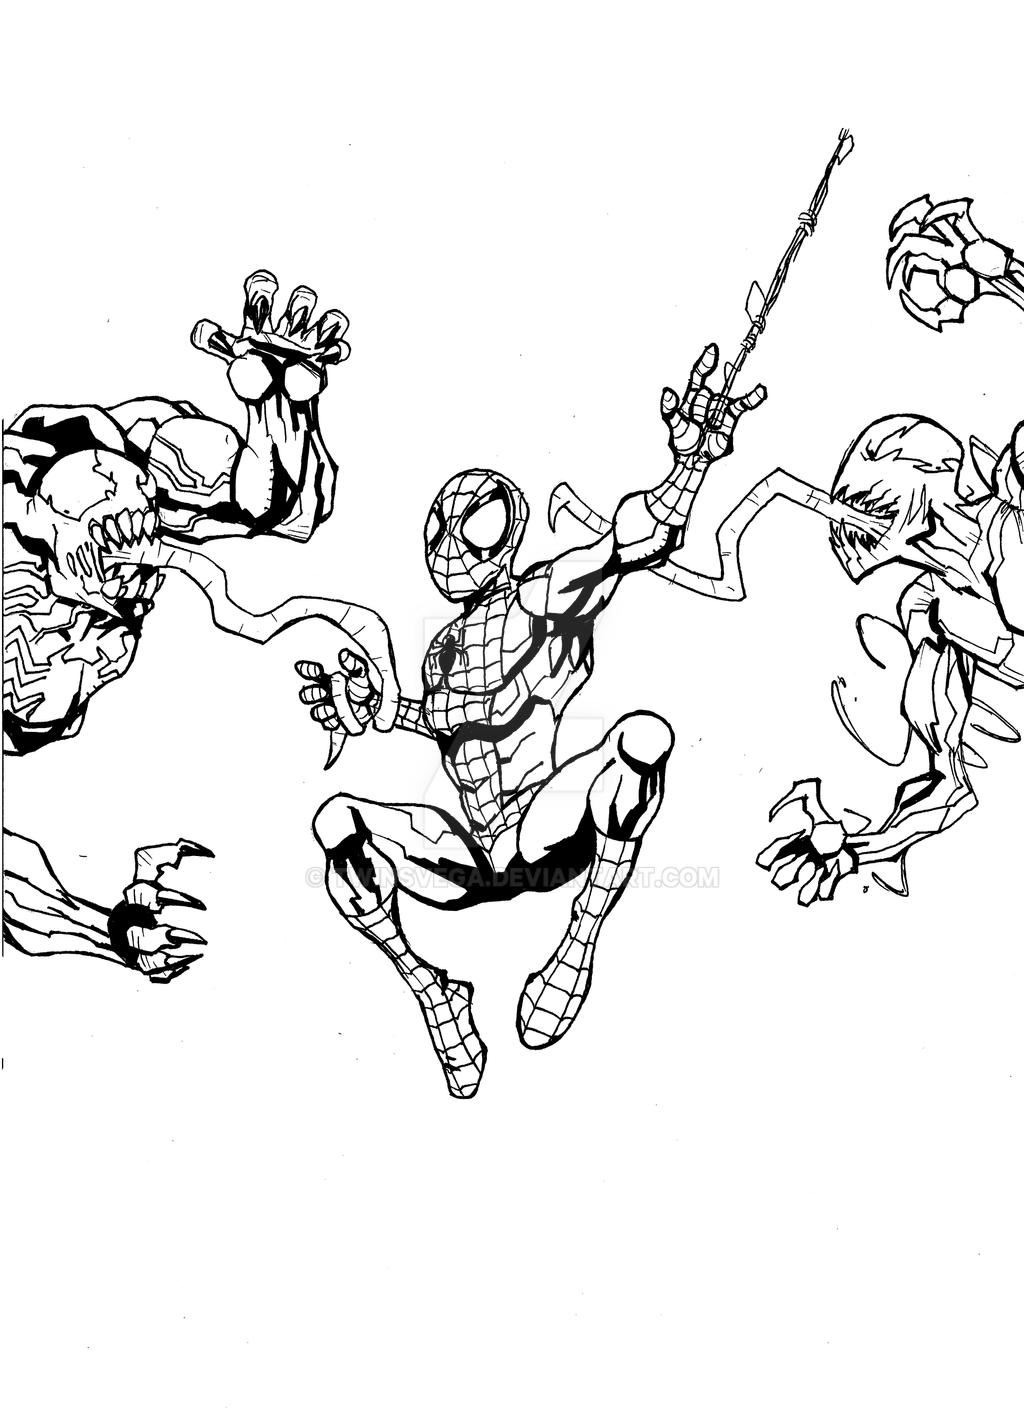 carnage spider man coloring pages - photo#5